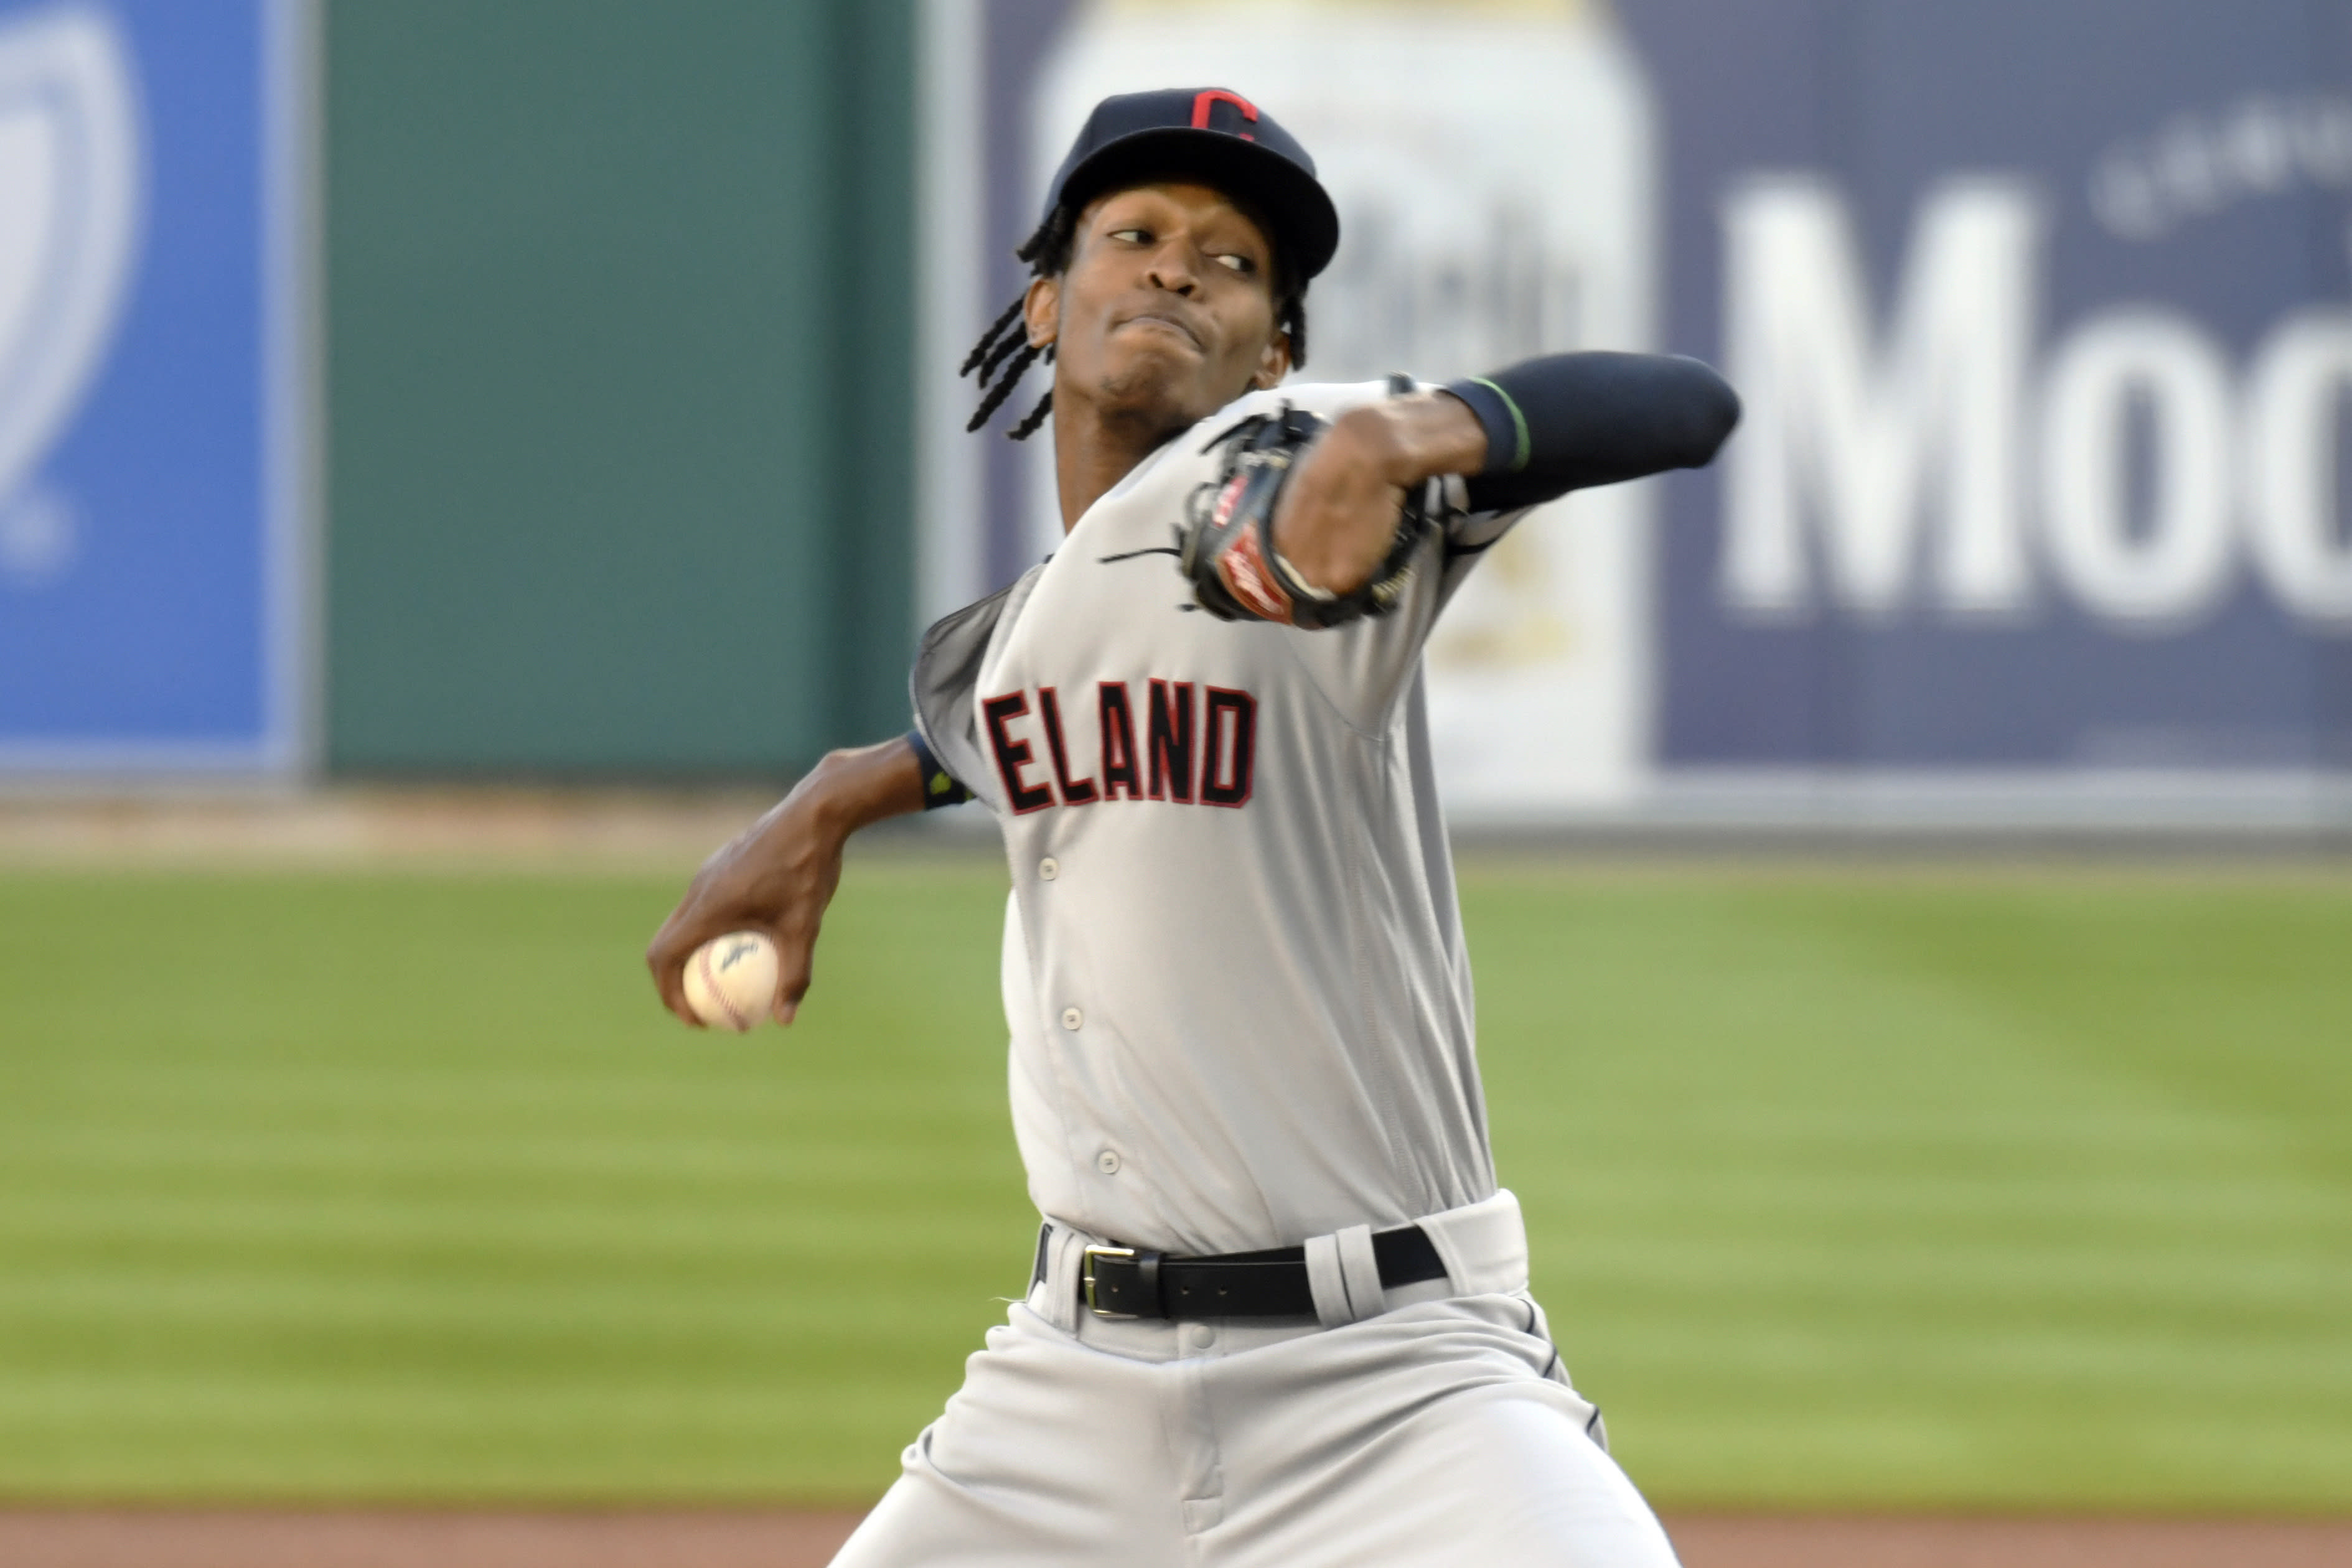 Cleveland Indians starting pitcher Triston McKenzie throws against the Detroit Tigers in the first inning of a baseball game Saturday, Sept. 19, 2020, in Detroit. (AP Photo/Jose Juarez)